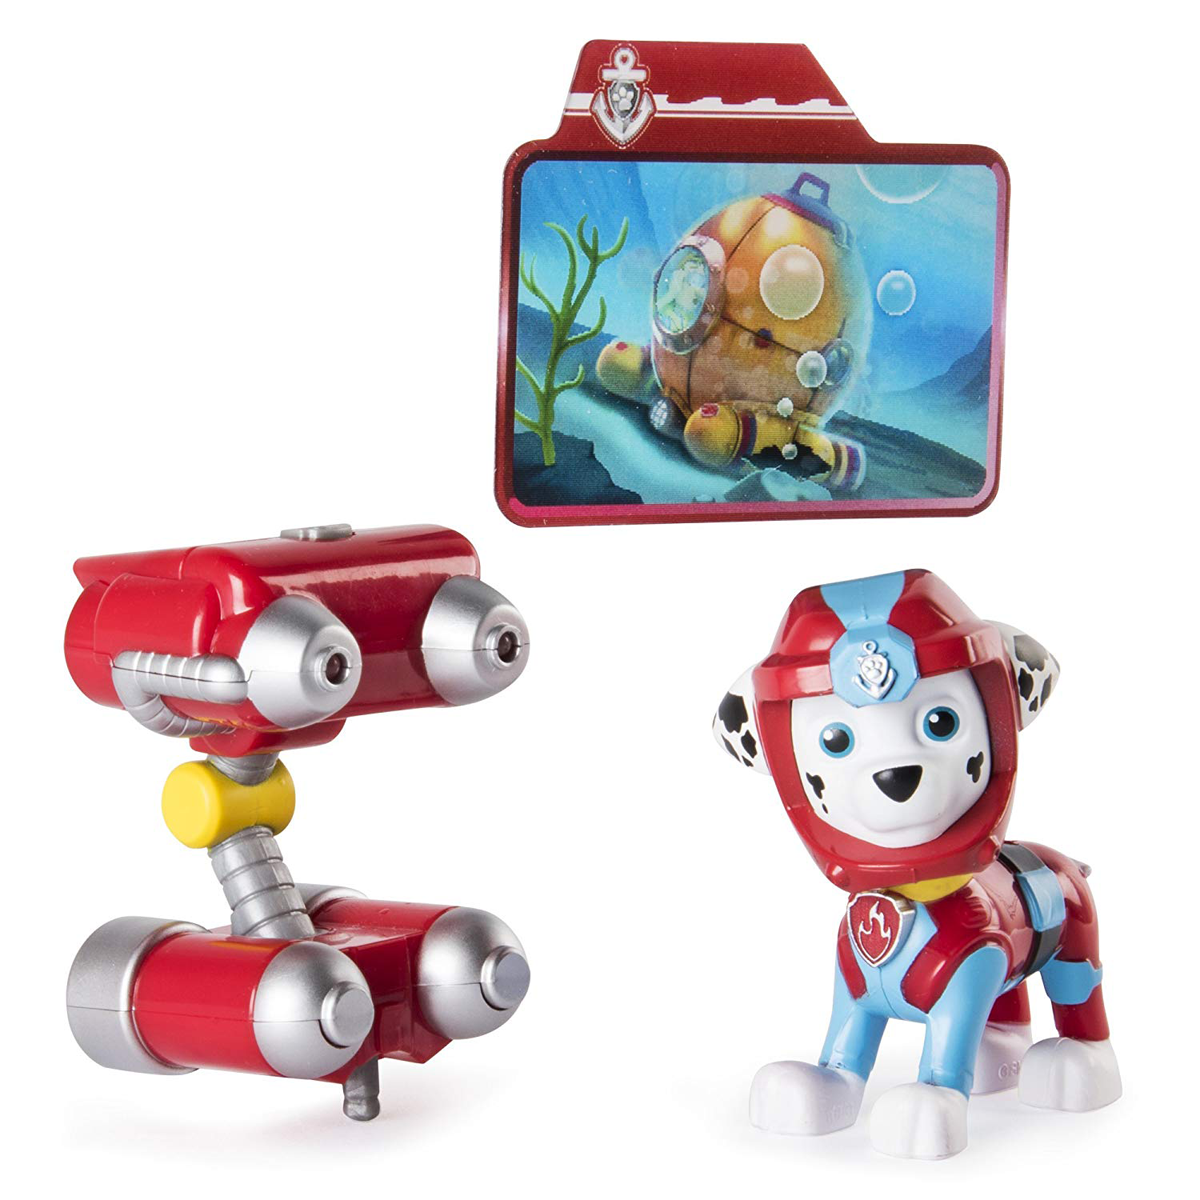 Paw Patrol Sea Patrol Light Up Figure - Marshall from Early Learning Center